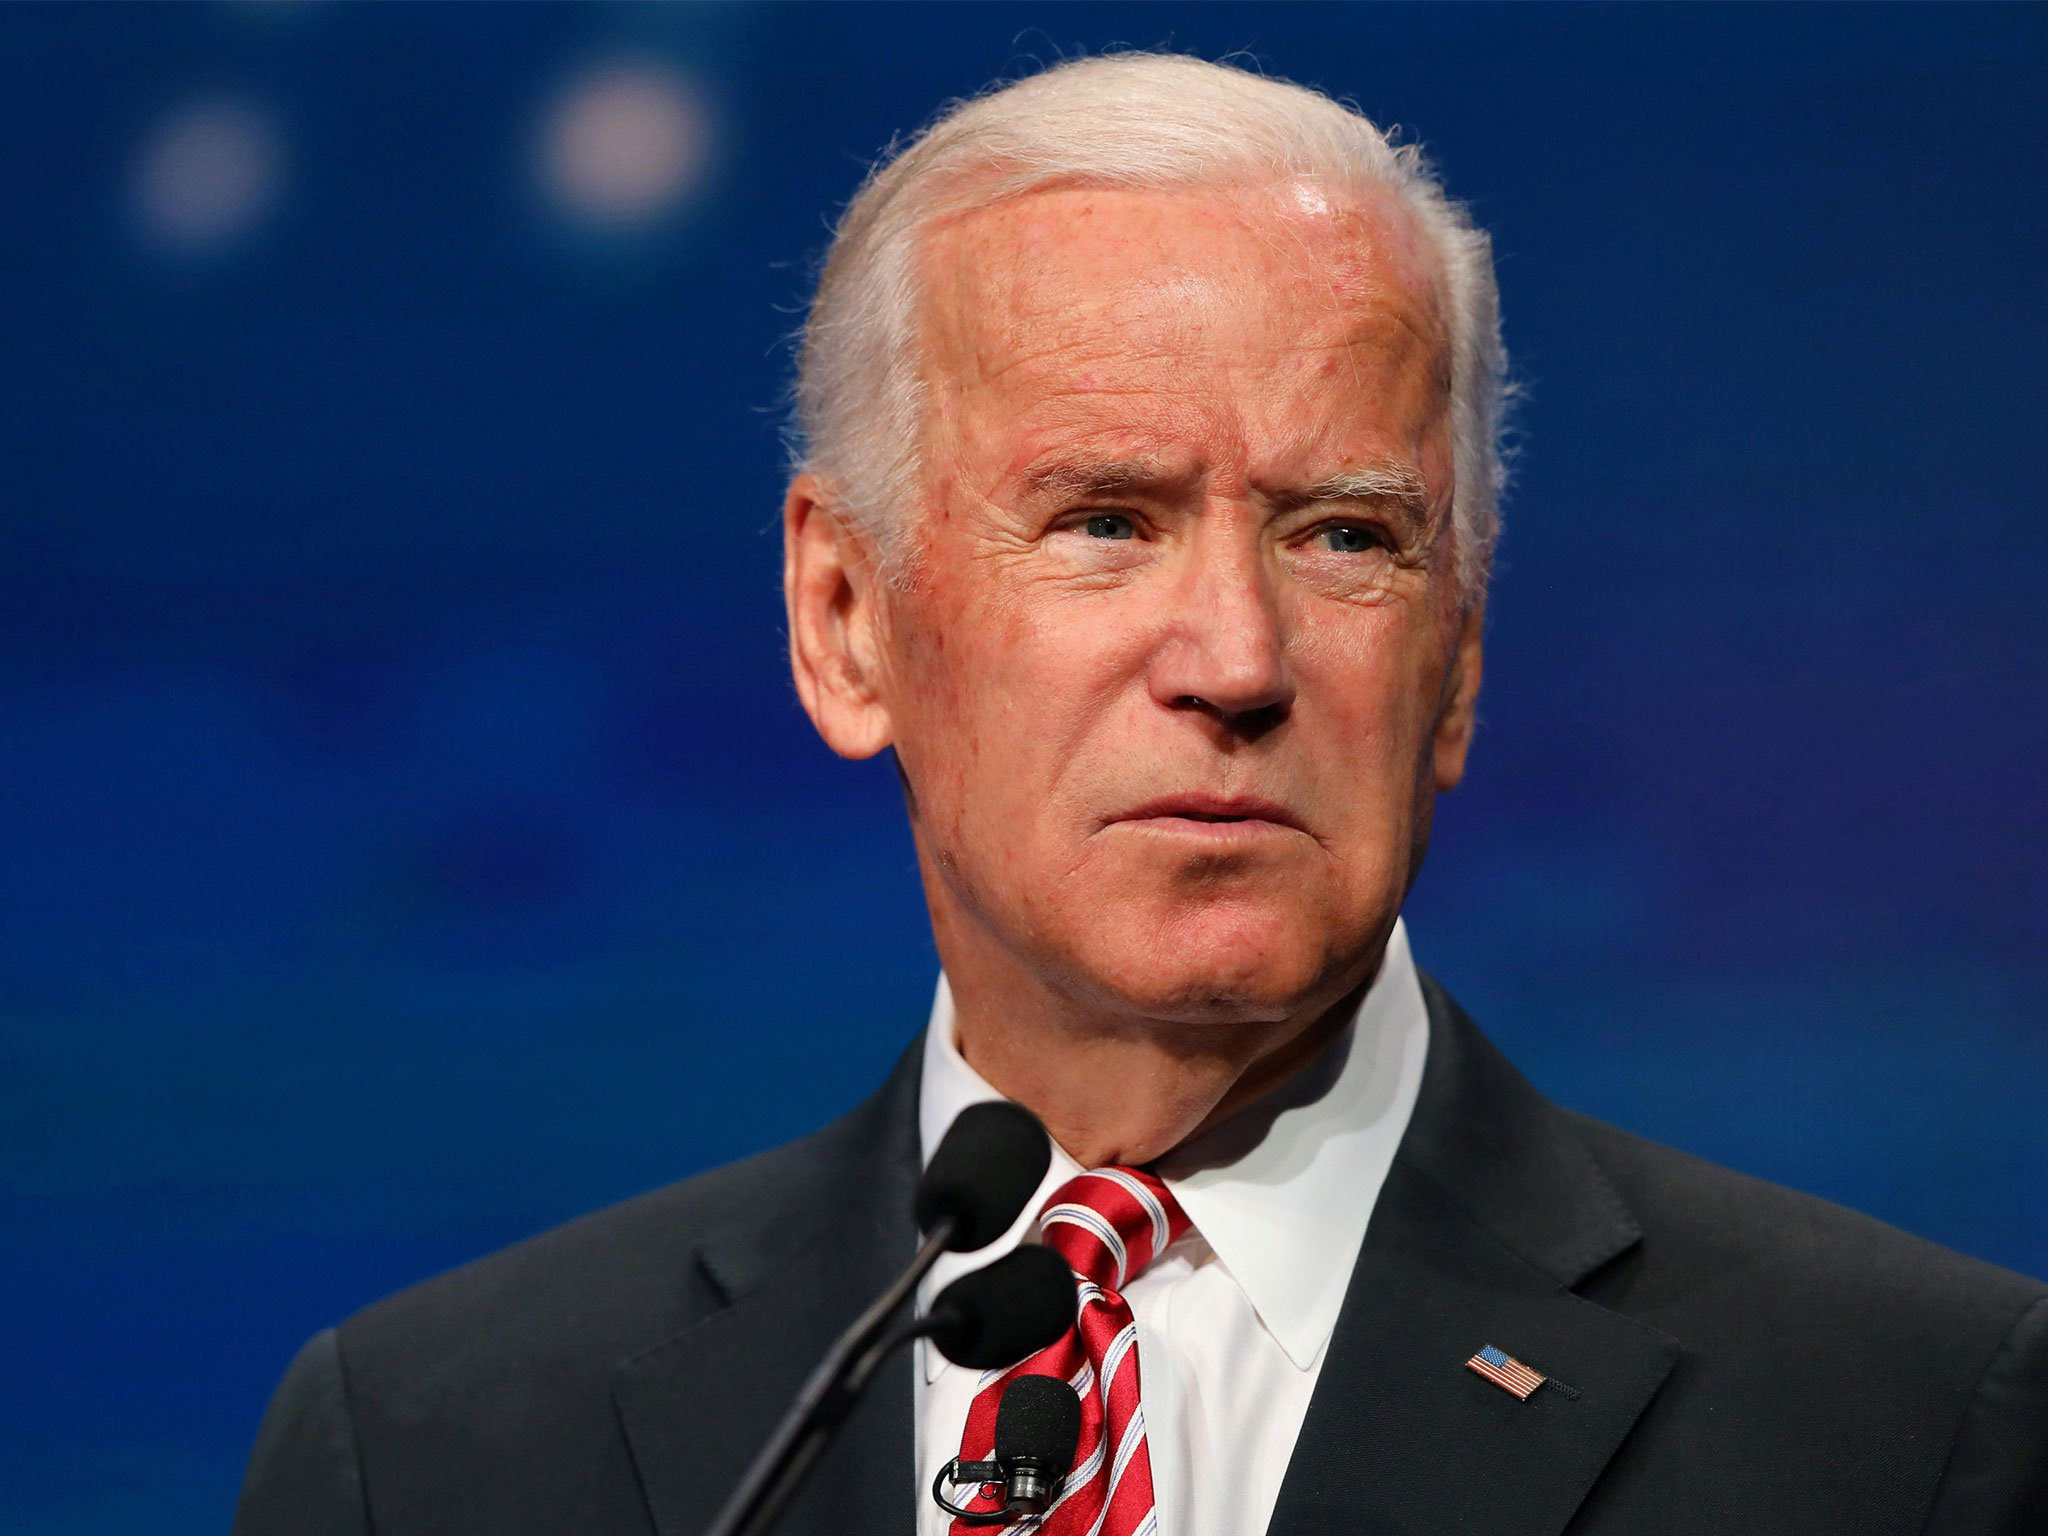 Former Vice President Joe Biden, in his first major foreign policy address as a Democratic presidential candidate, on Thursday blasted U.S. President Donald Trump's performance on the world stage as erratic and extreme.